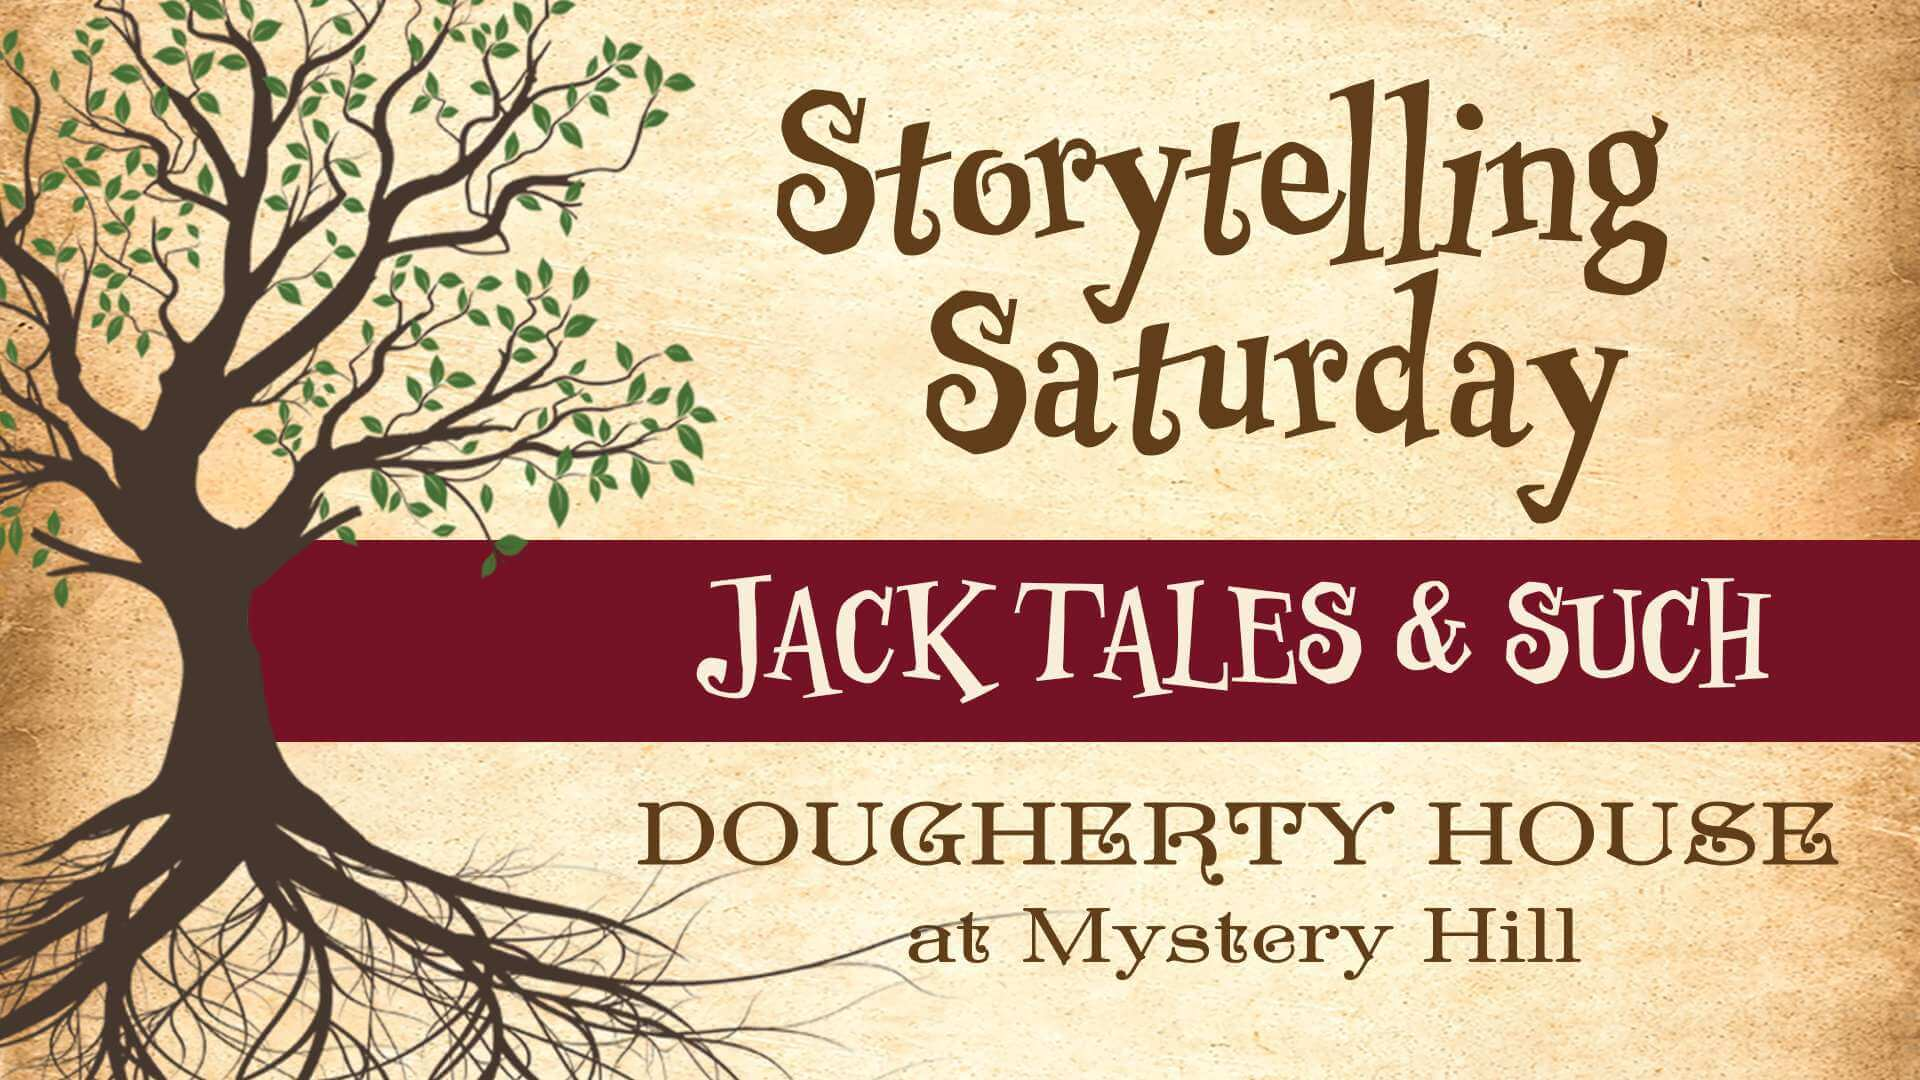 storytelling saturday at mystery hill